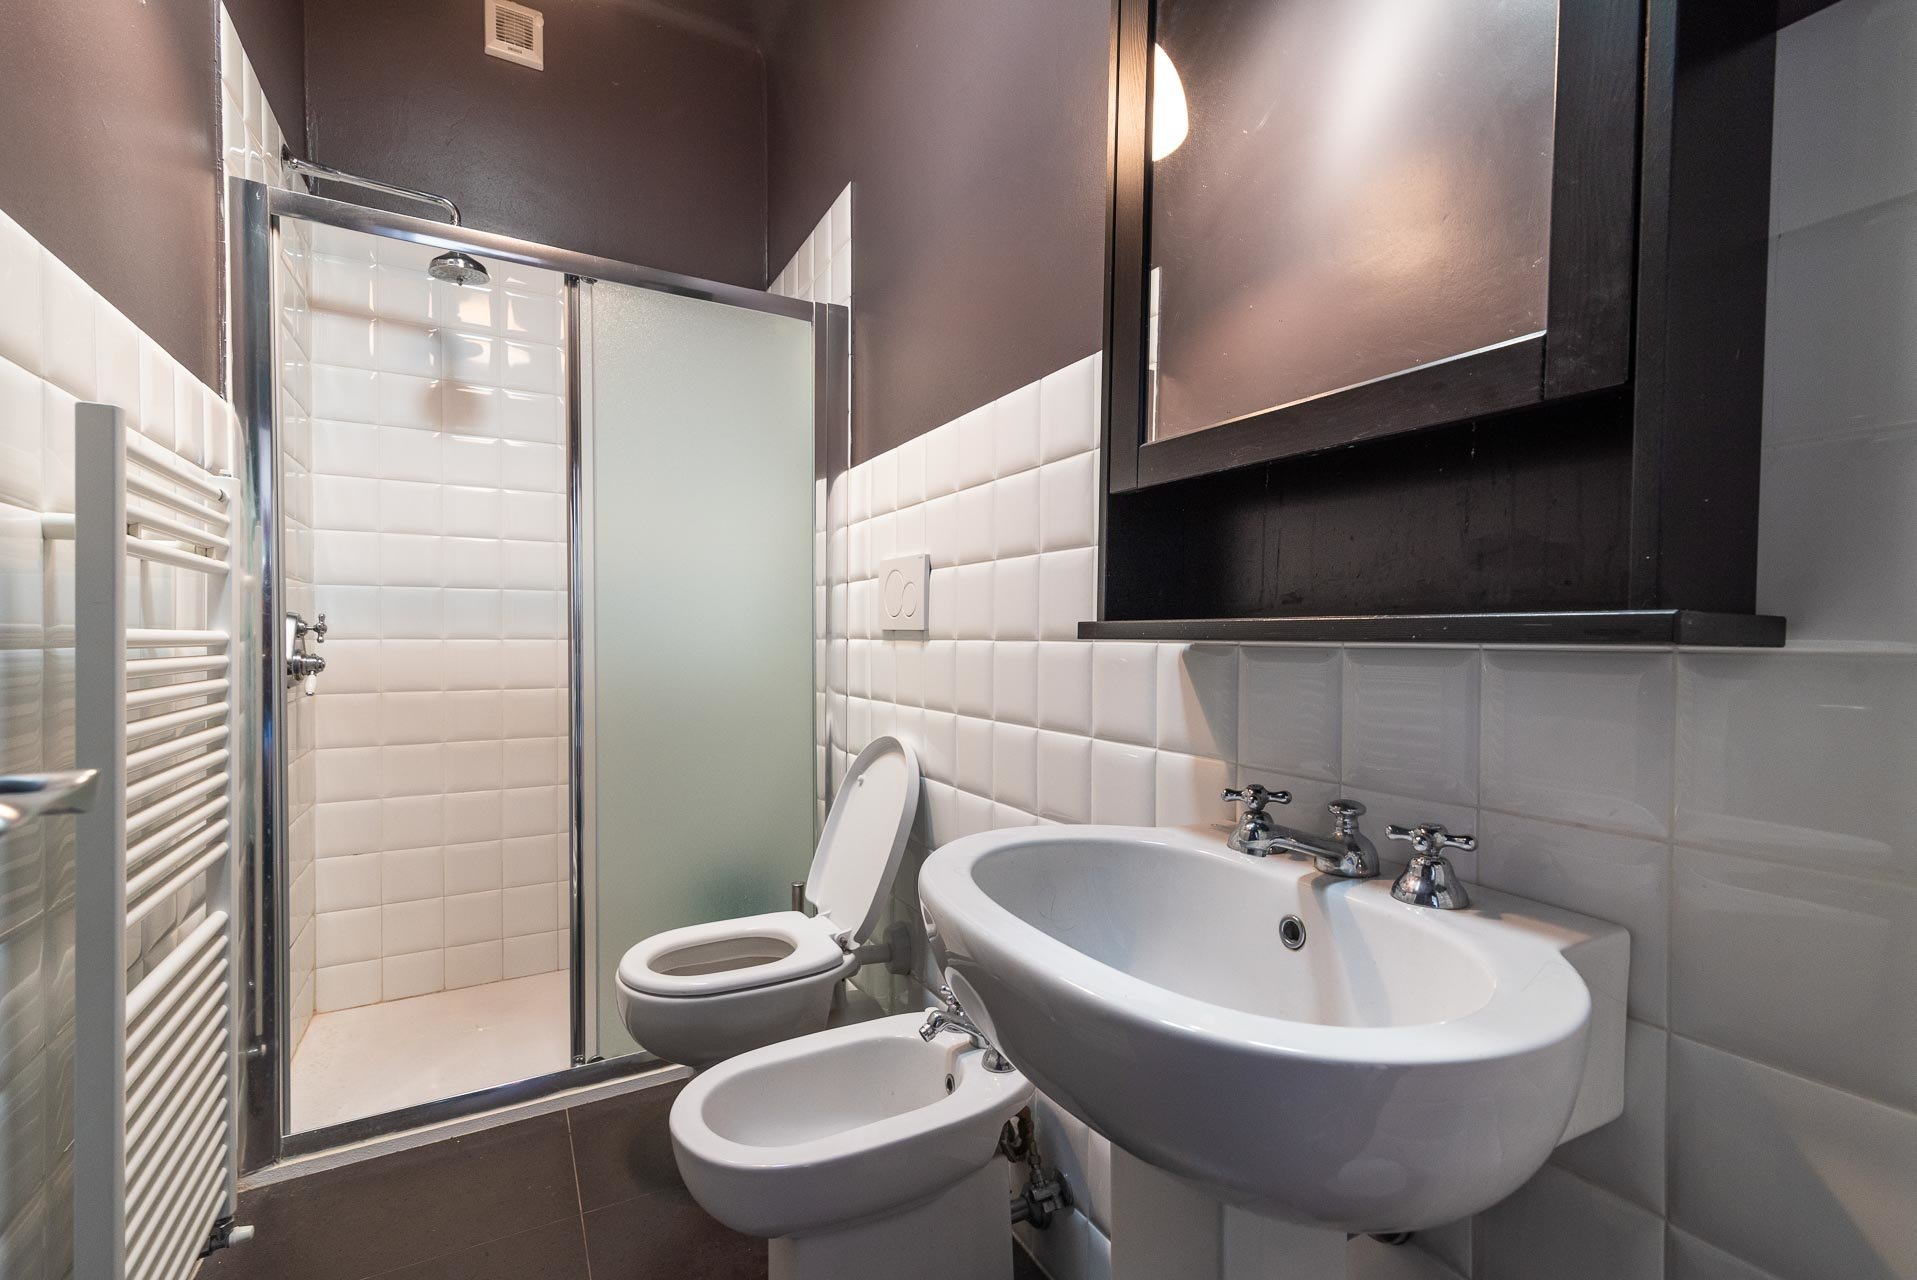 Lesa, apartment for sale on the lakefront - bathroom